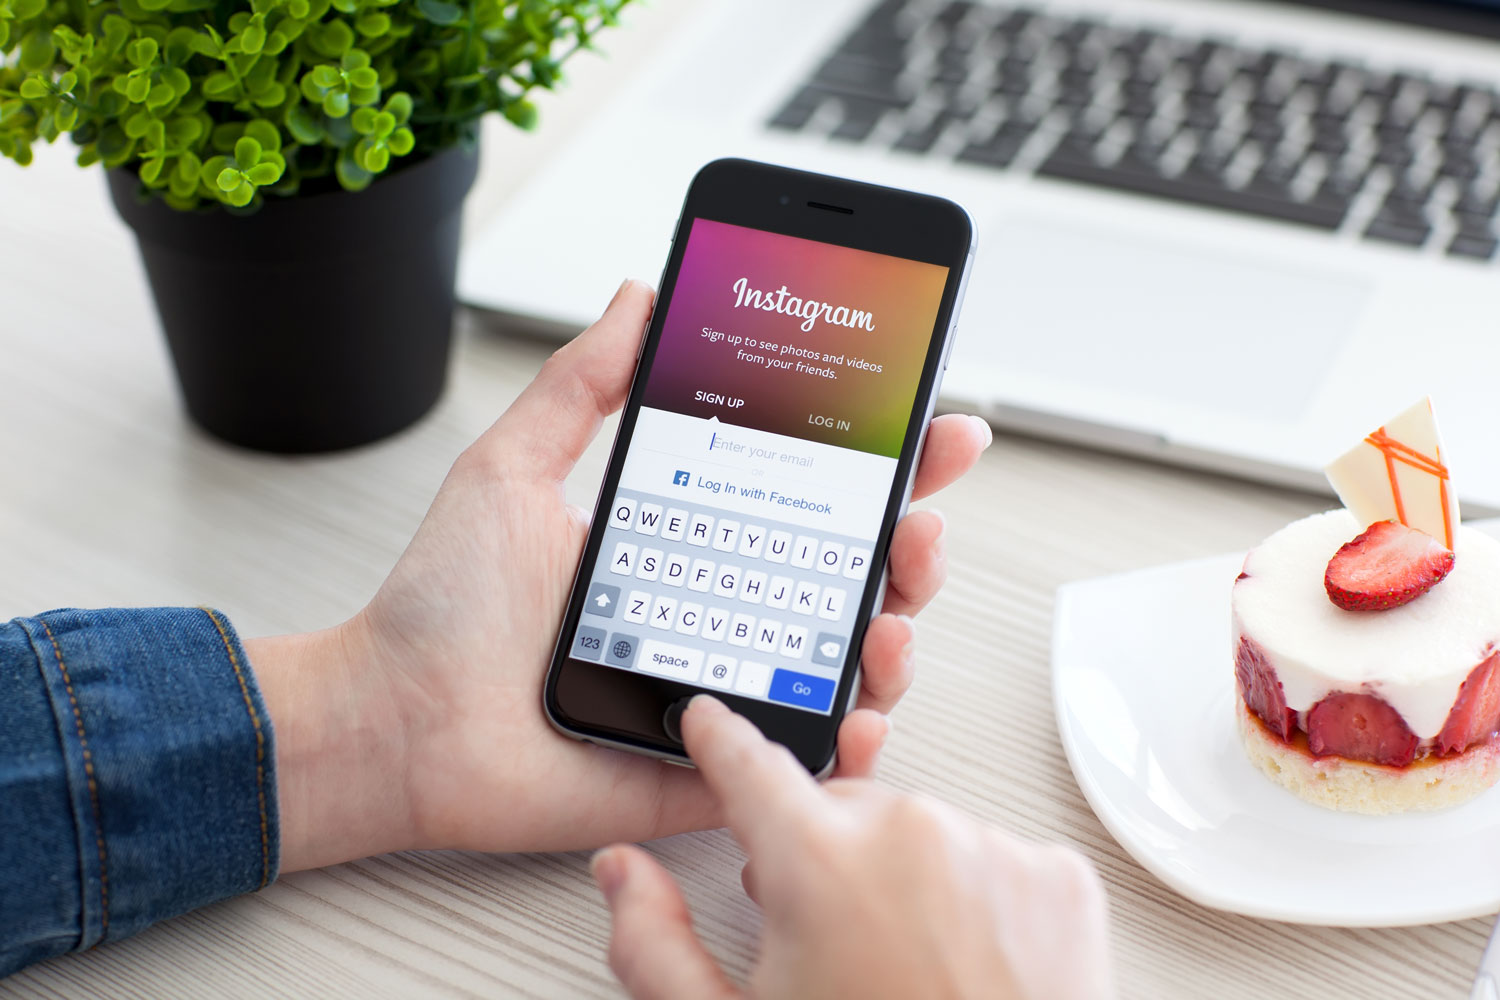 Instagram Marketing Statistics